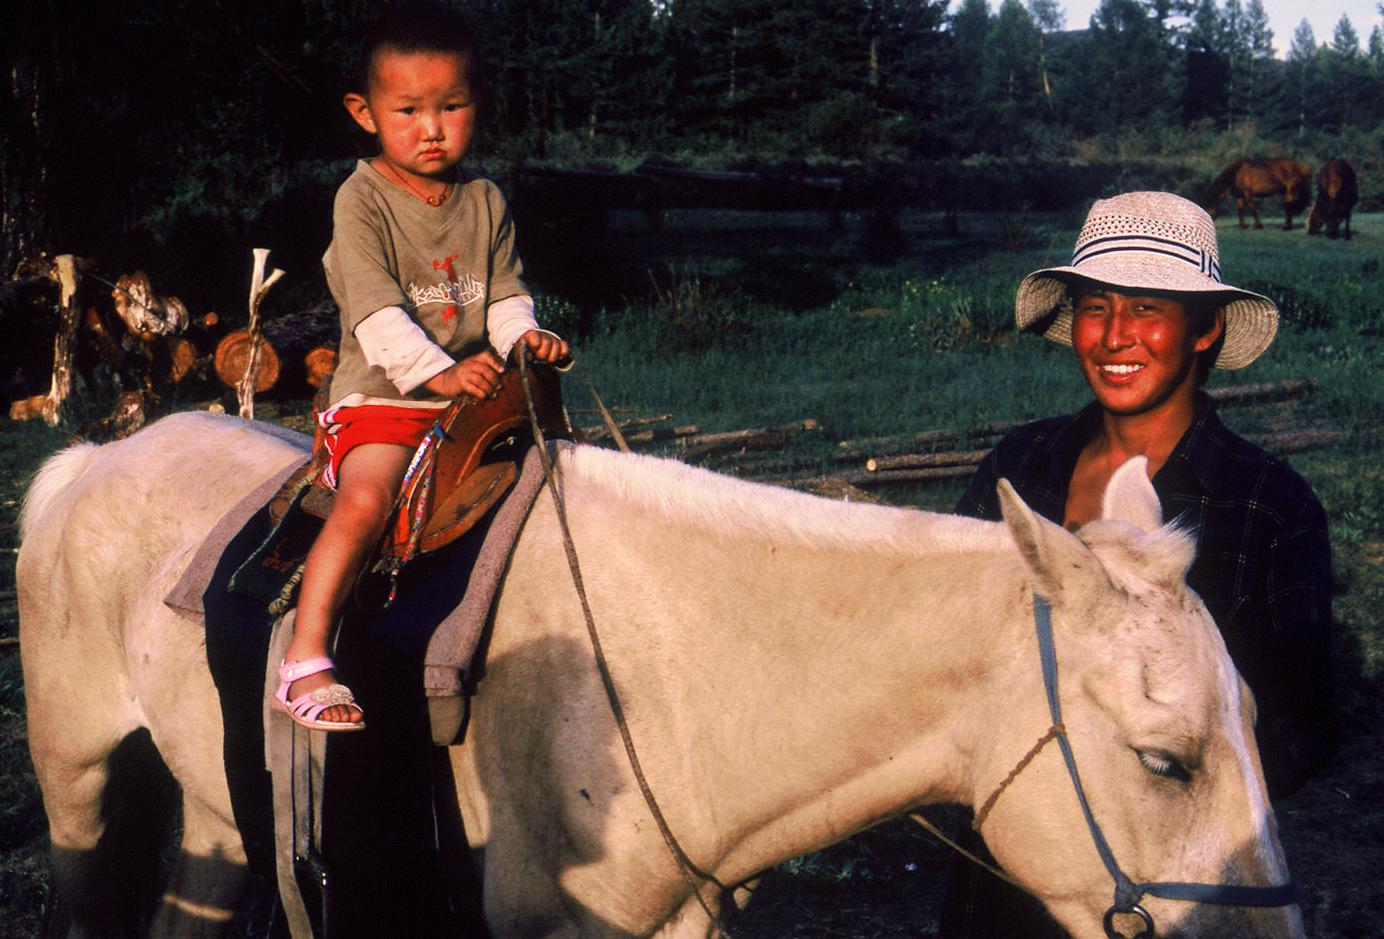 Kids learn to ride very early on, as they are in charge of breaking young horses.